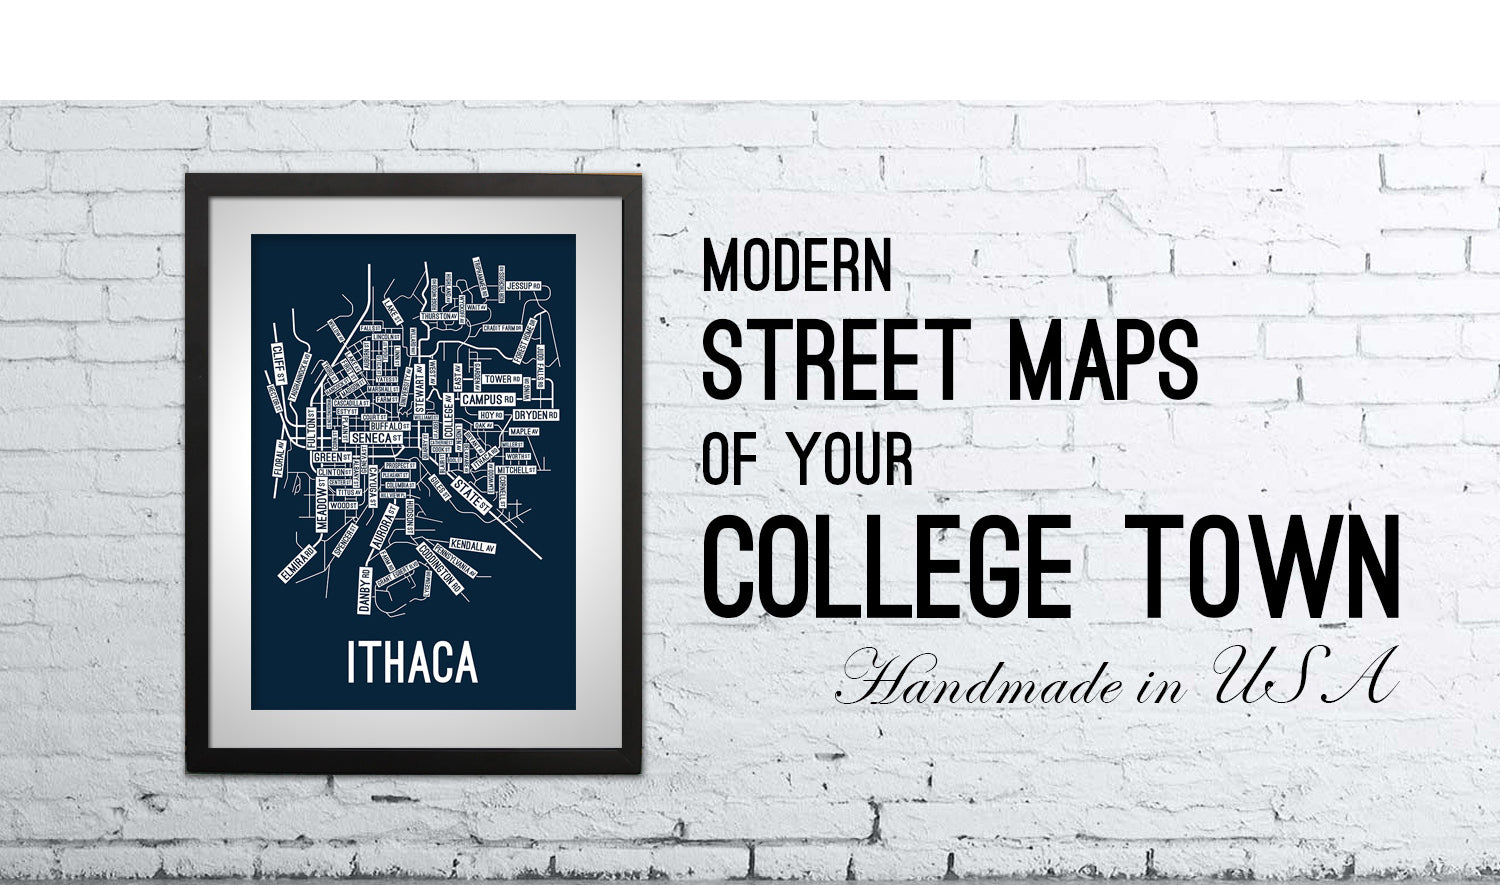 Wartburg College Campus Map.School Street Posters College Town Maps